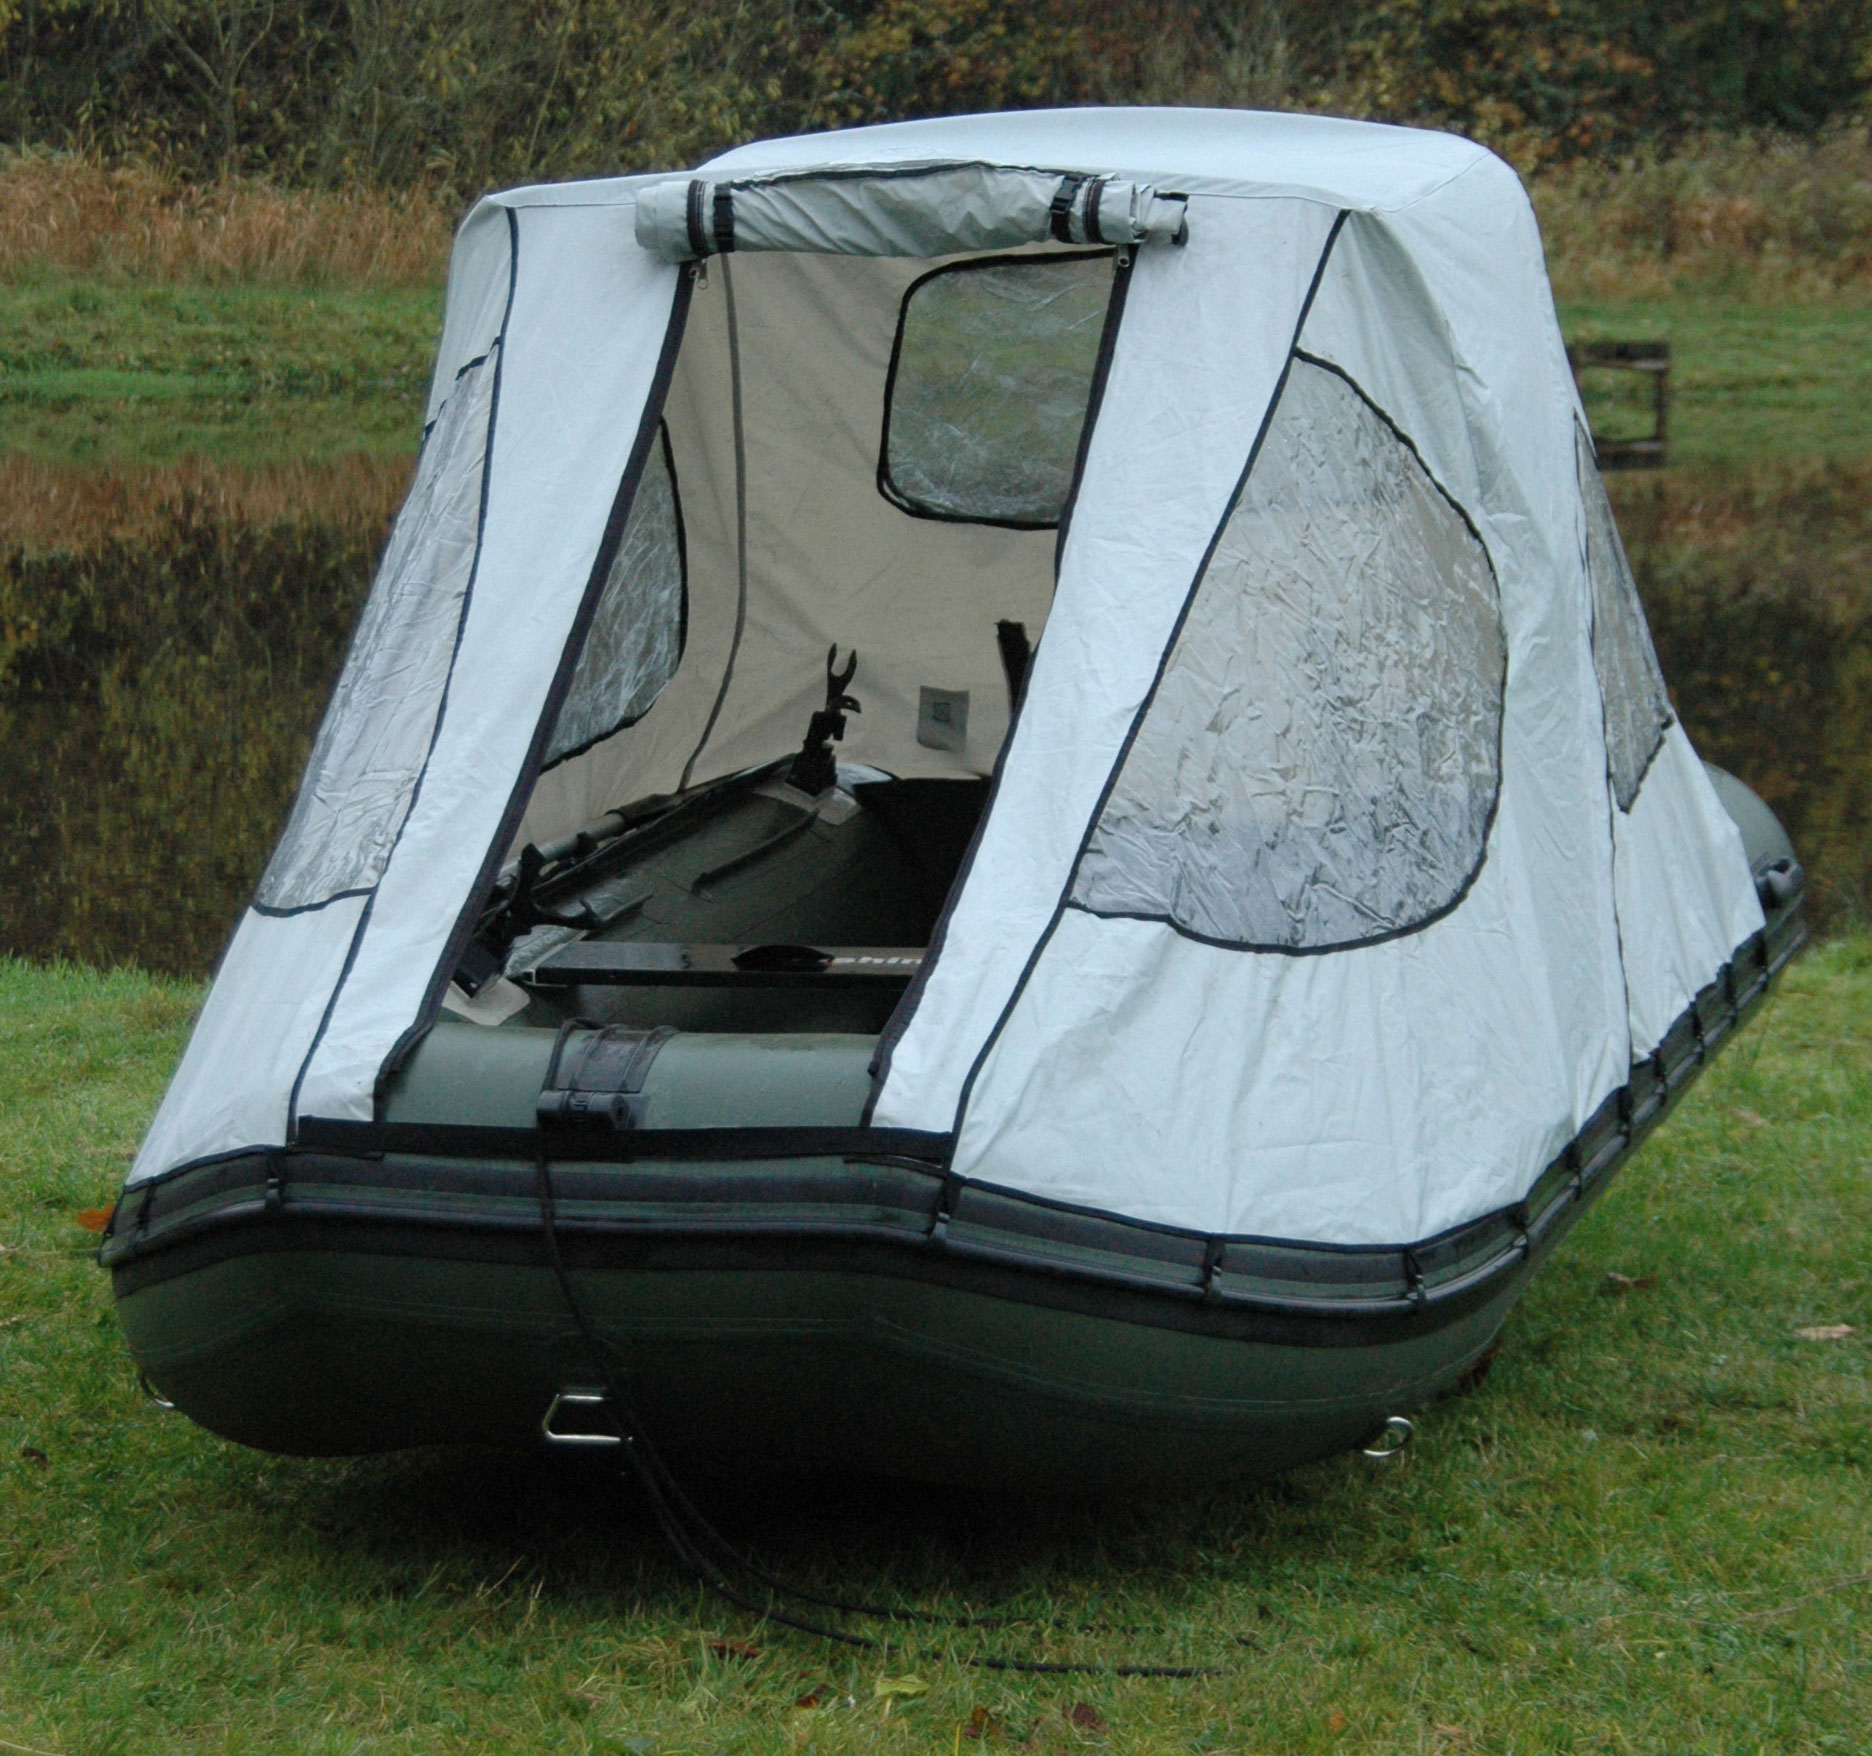 fishing chair tent covers ottawa bison marine bimini cockpit canopy for inflatable boat